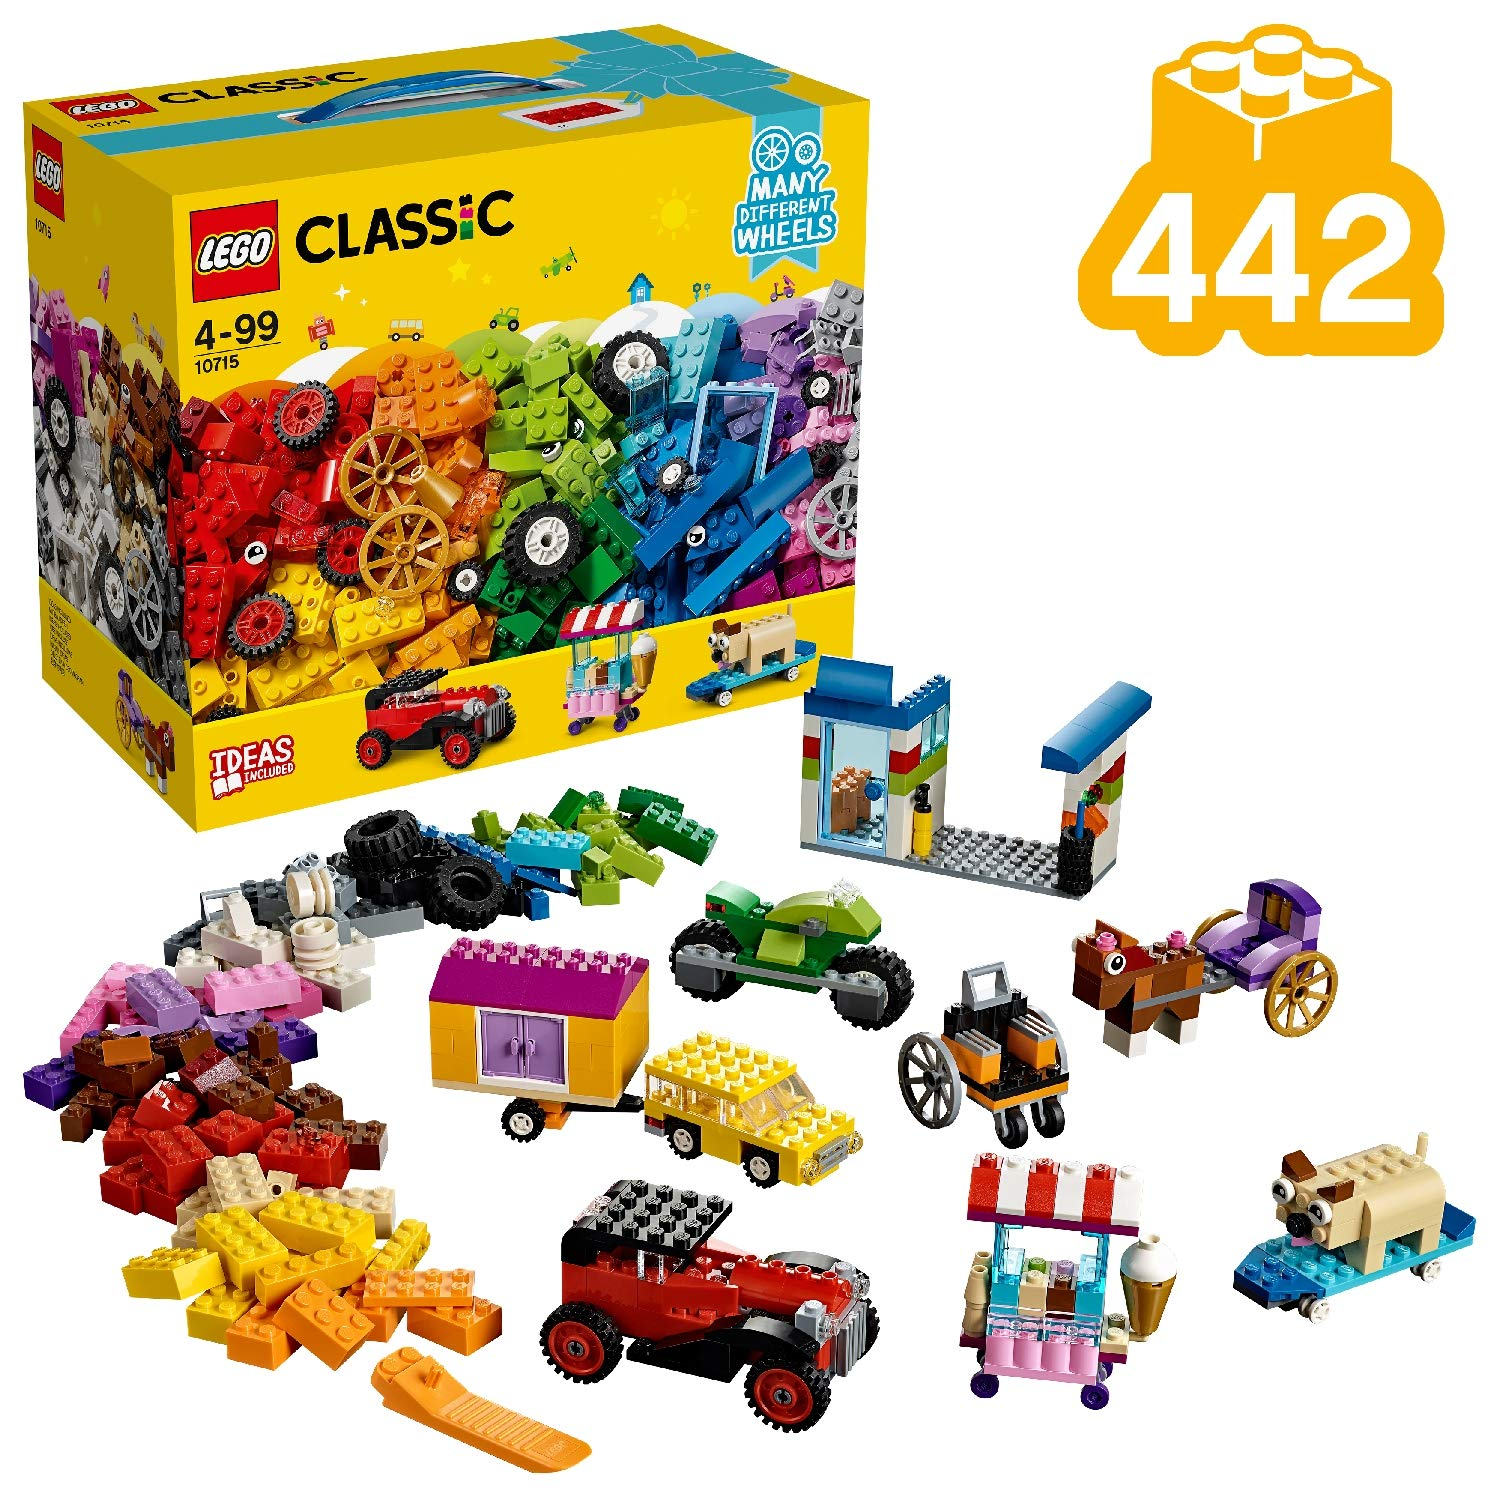 LEGO Classic Bricks on a Roll Construction Set, Colourful Vehicle Toy Bricks